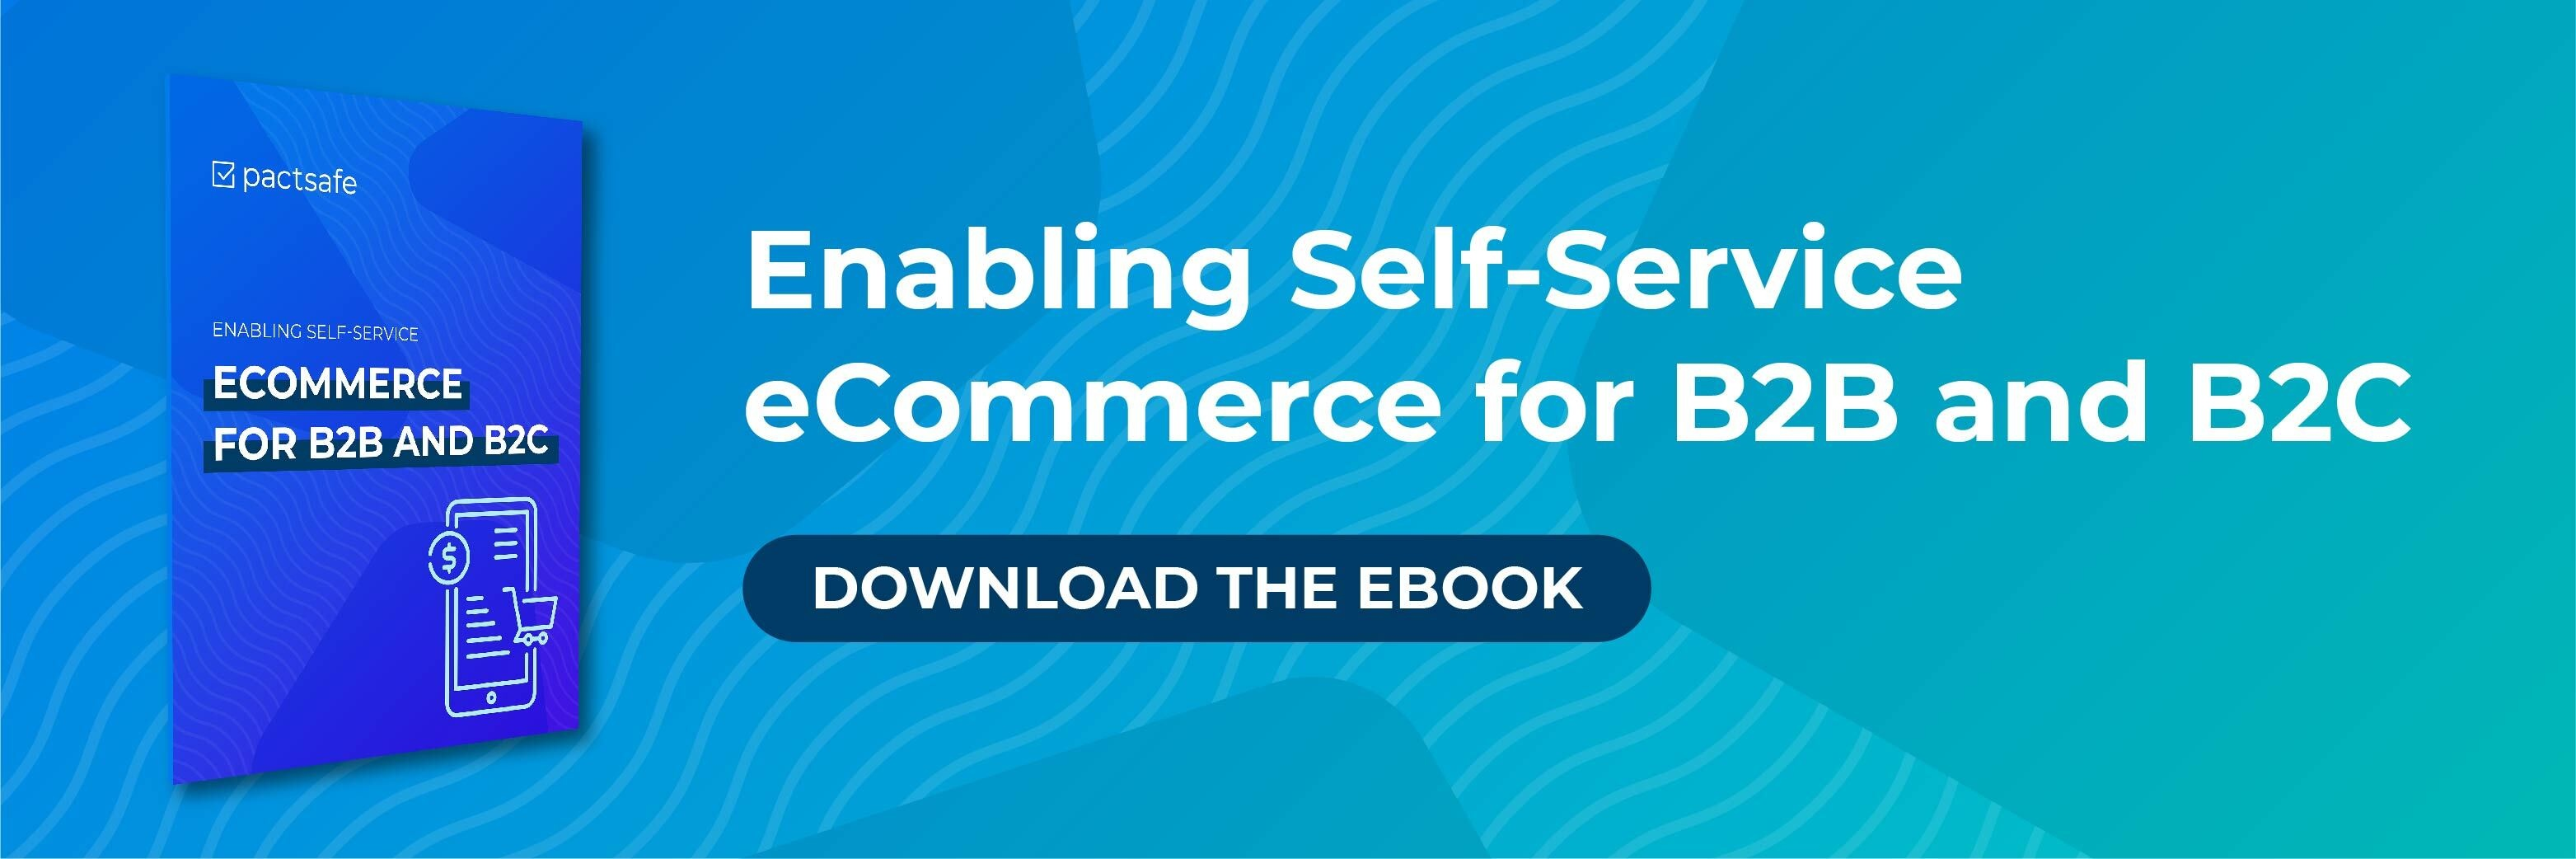 enabling self-service eCommerce for B2B and B2C